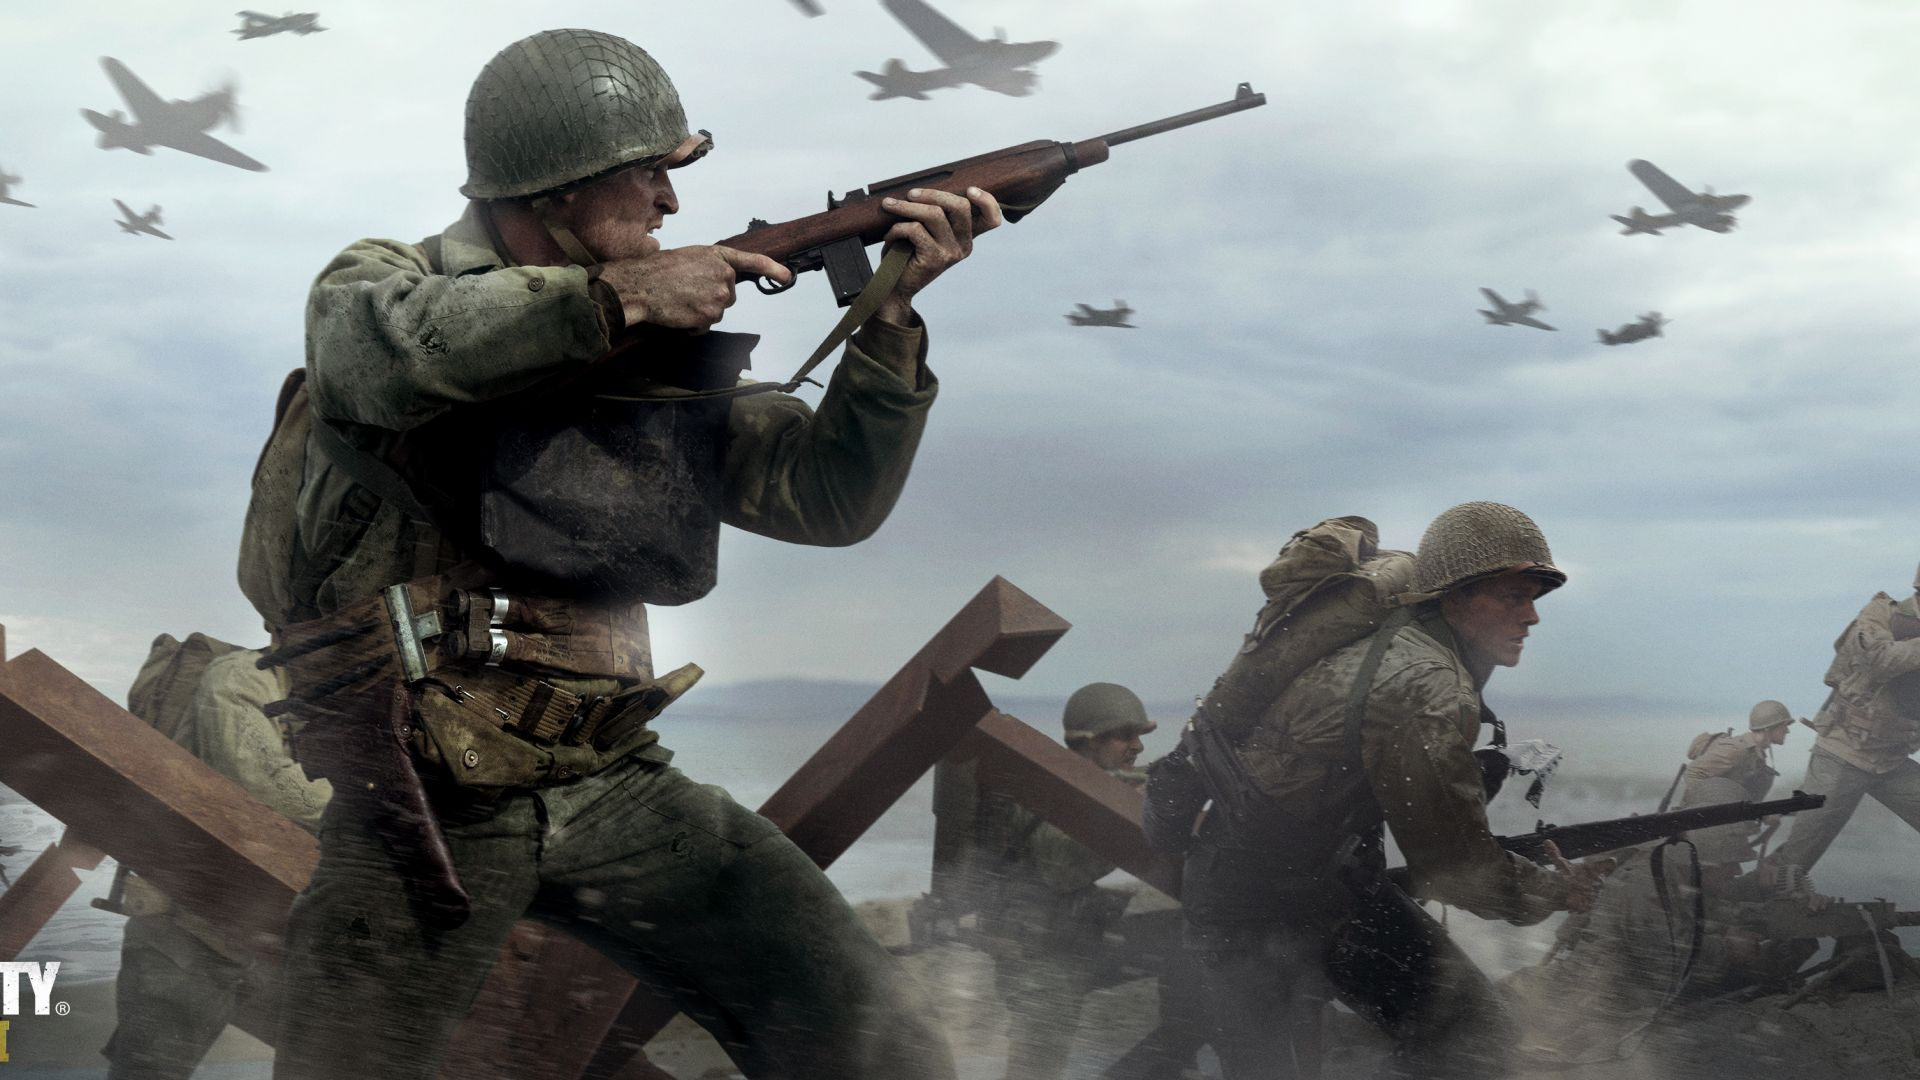 Call of Duty: WWII, шутер, фпс, кол оф дьюти, PS 4, Xbox One, ПК, лучшие игры, Call of Duty: WWII, shooter, fps, CoD, PS 4, Xbox One, PC, best games